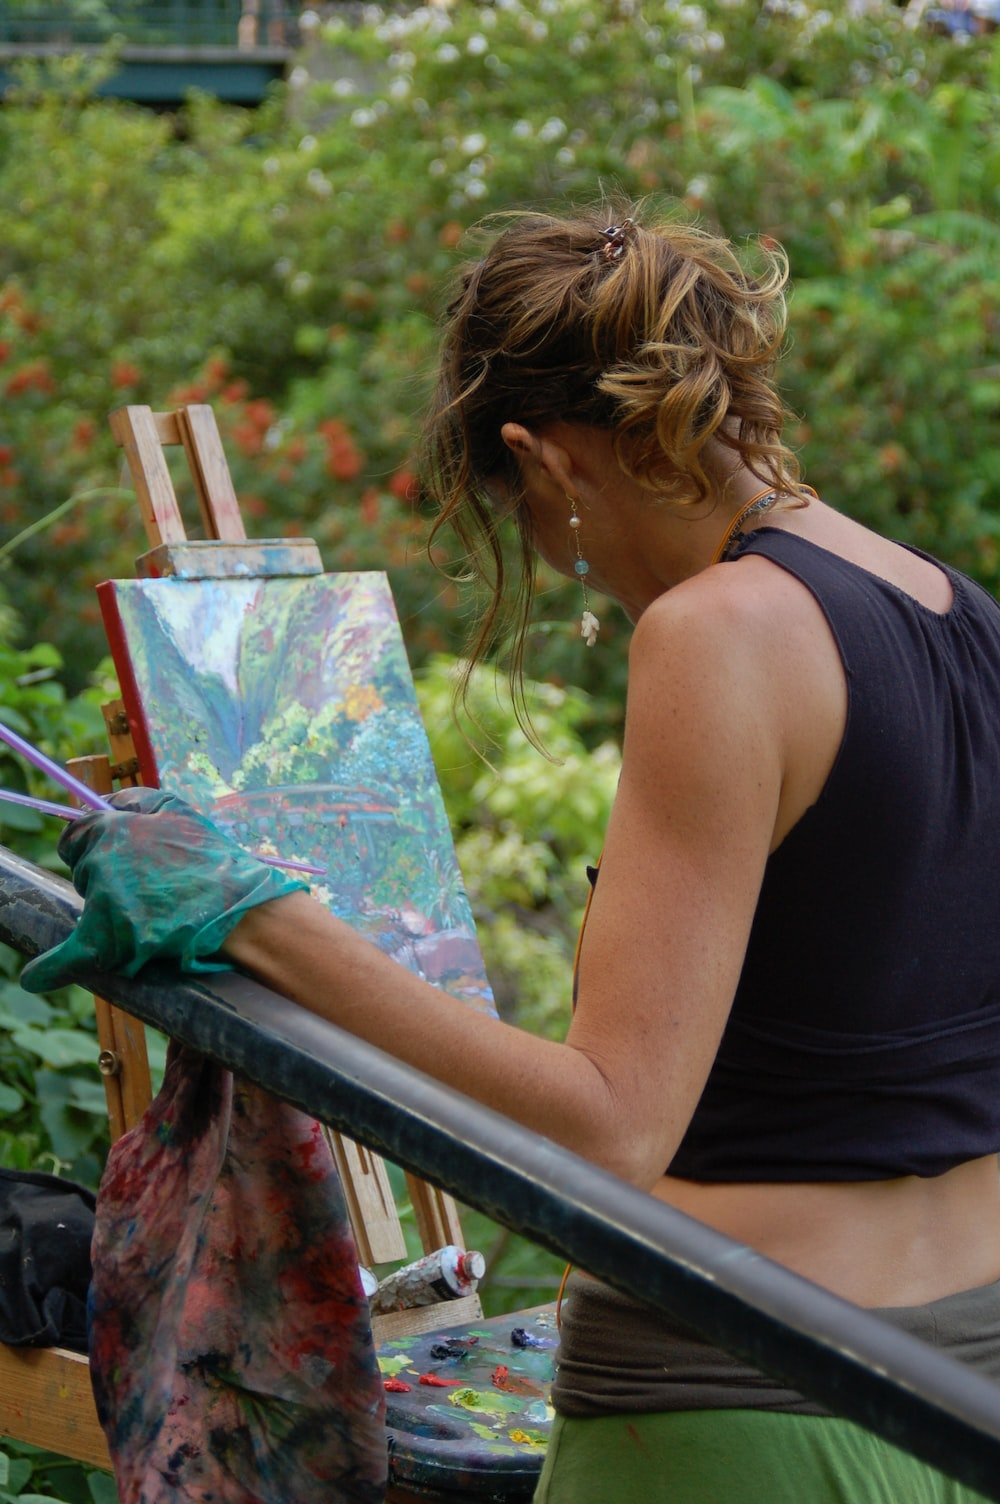 woman doing painting during daytime